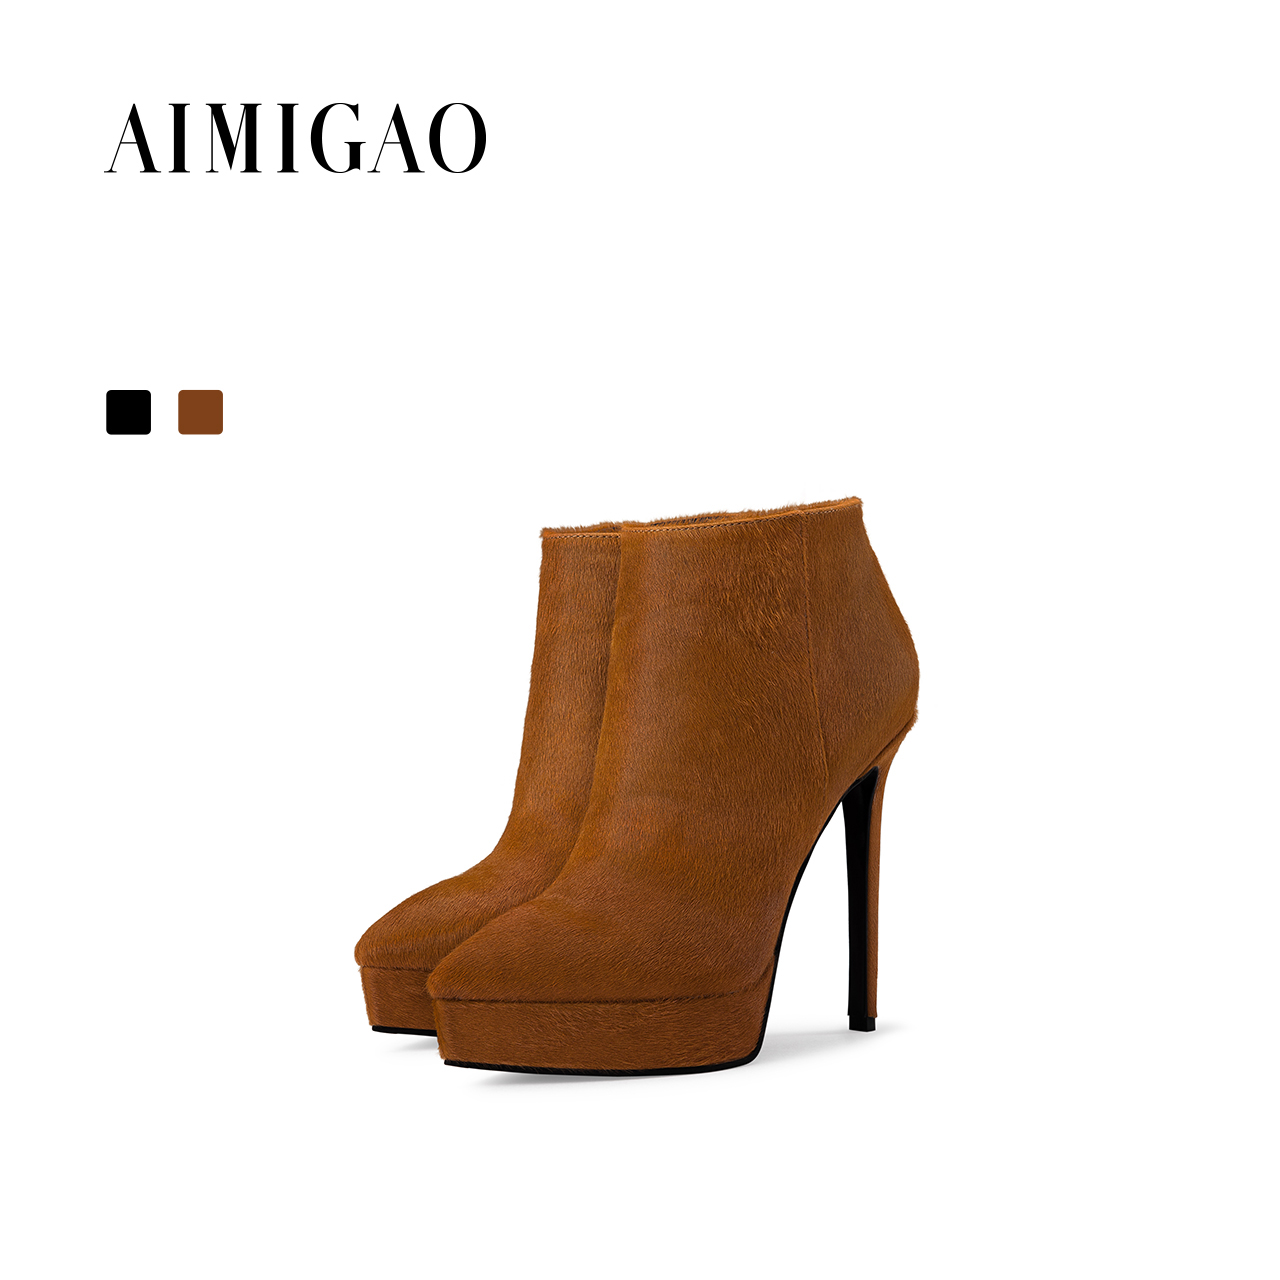 где купить AIMIGAO Sexy high heel platform ankle boots women side zipper fashion women boots pointed toe boots shoes 2017 autumn winter new по лучшей цене